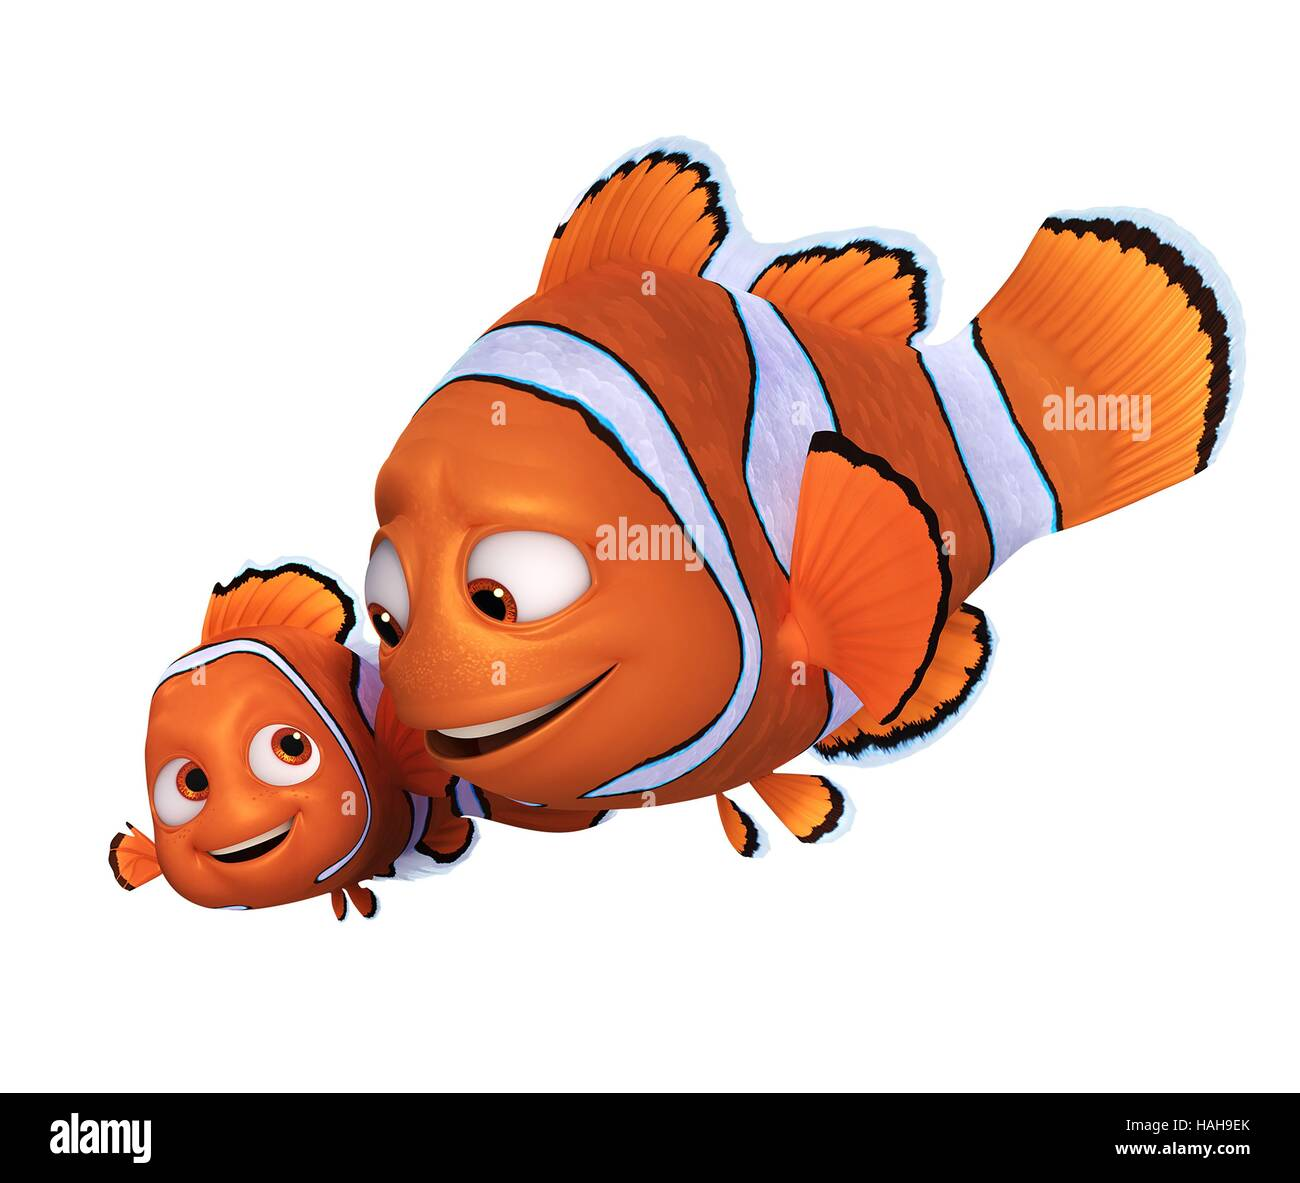 Finding Nemo Cut Out Stock Images & Pictures - Alamy